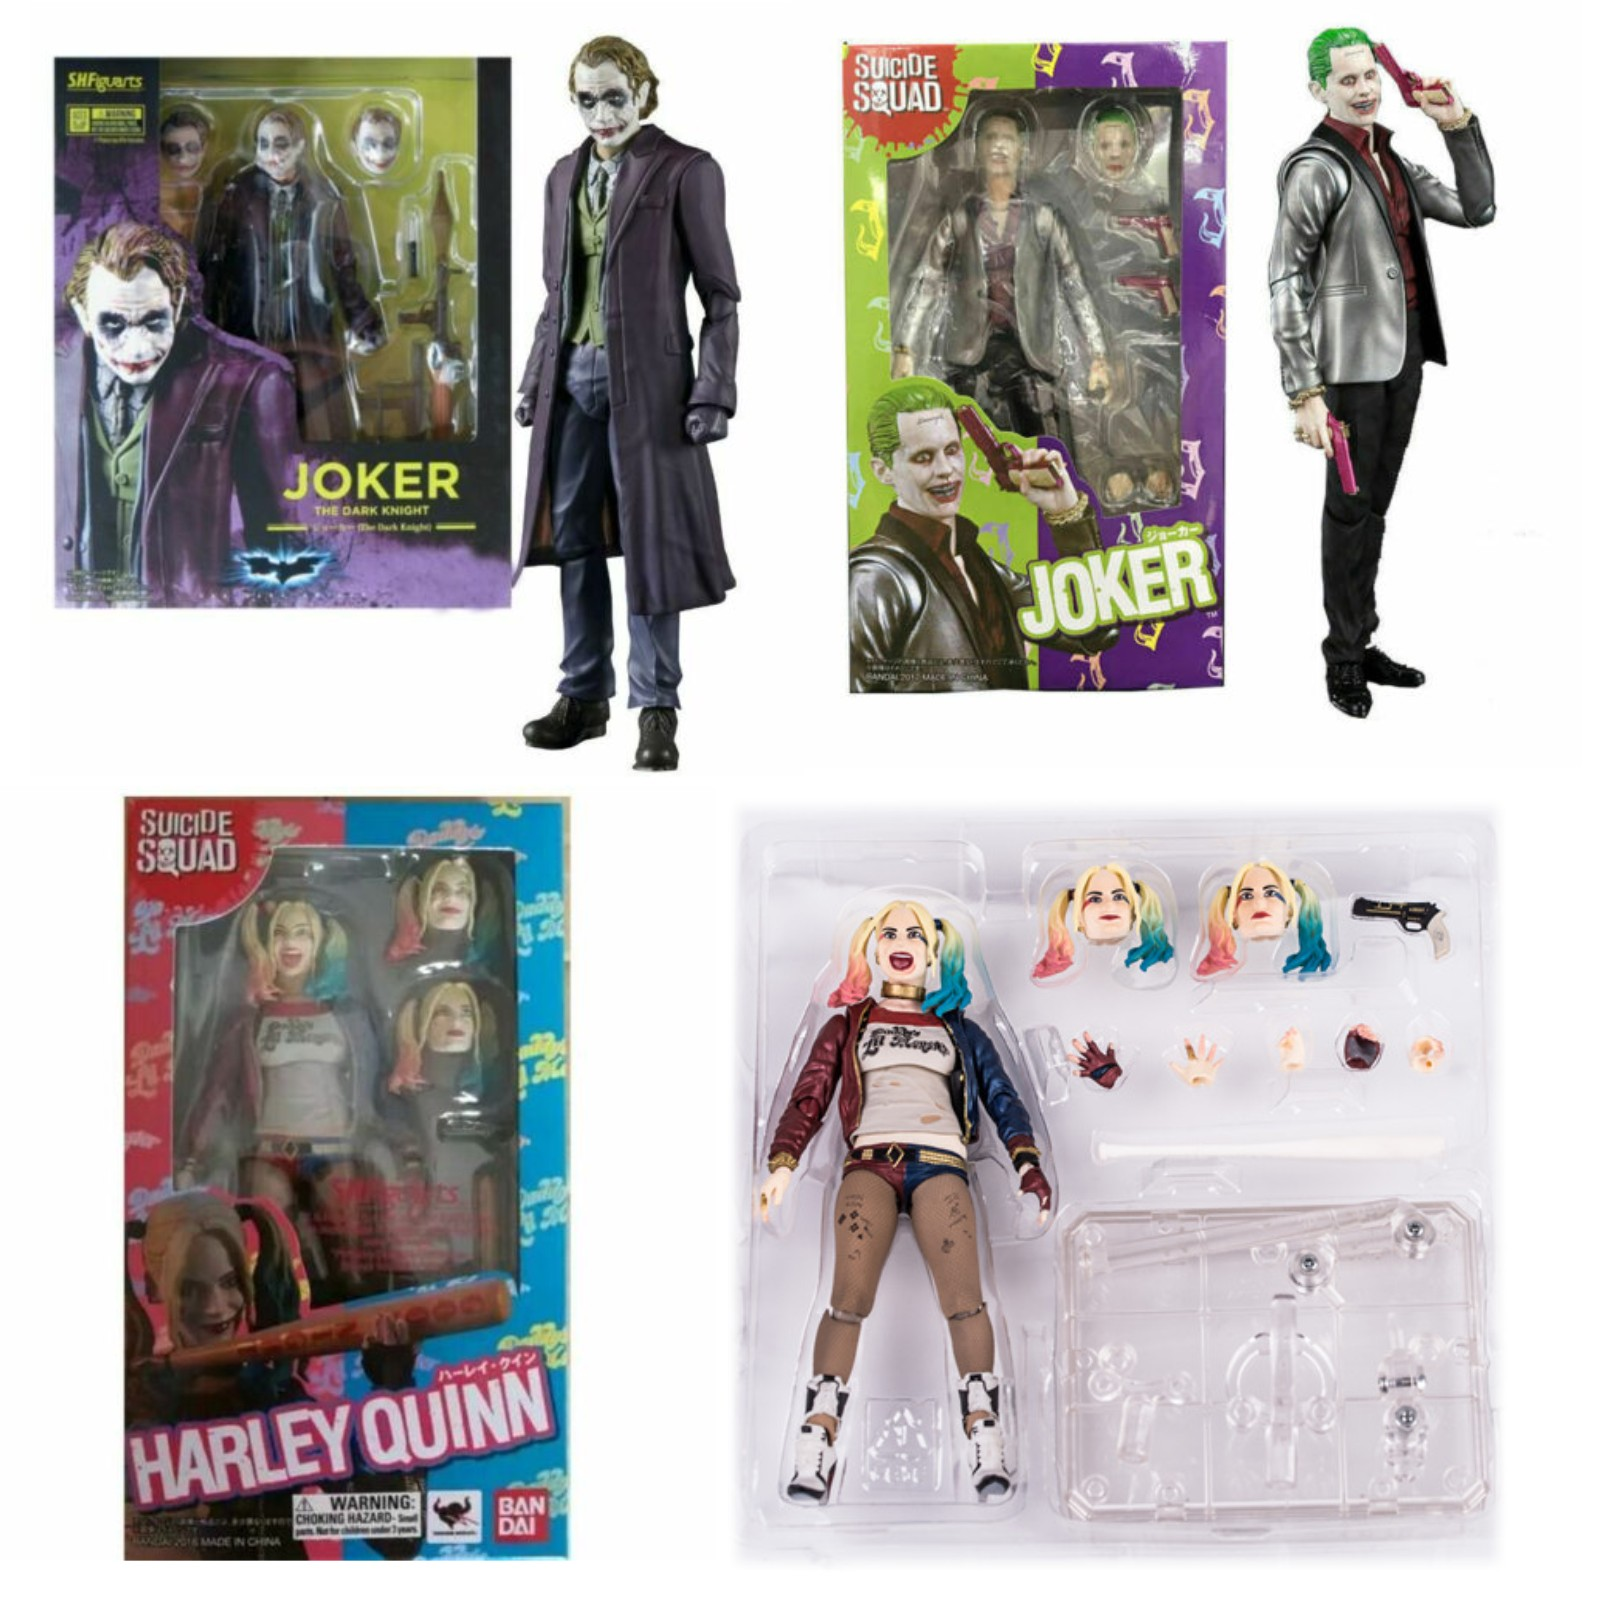 Suicide Squad Harley Quinn Action Figure S.H.Figuarts Collectible Toy In Box UK